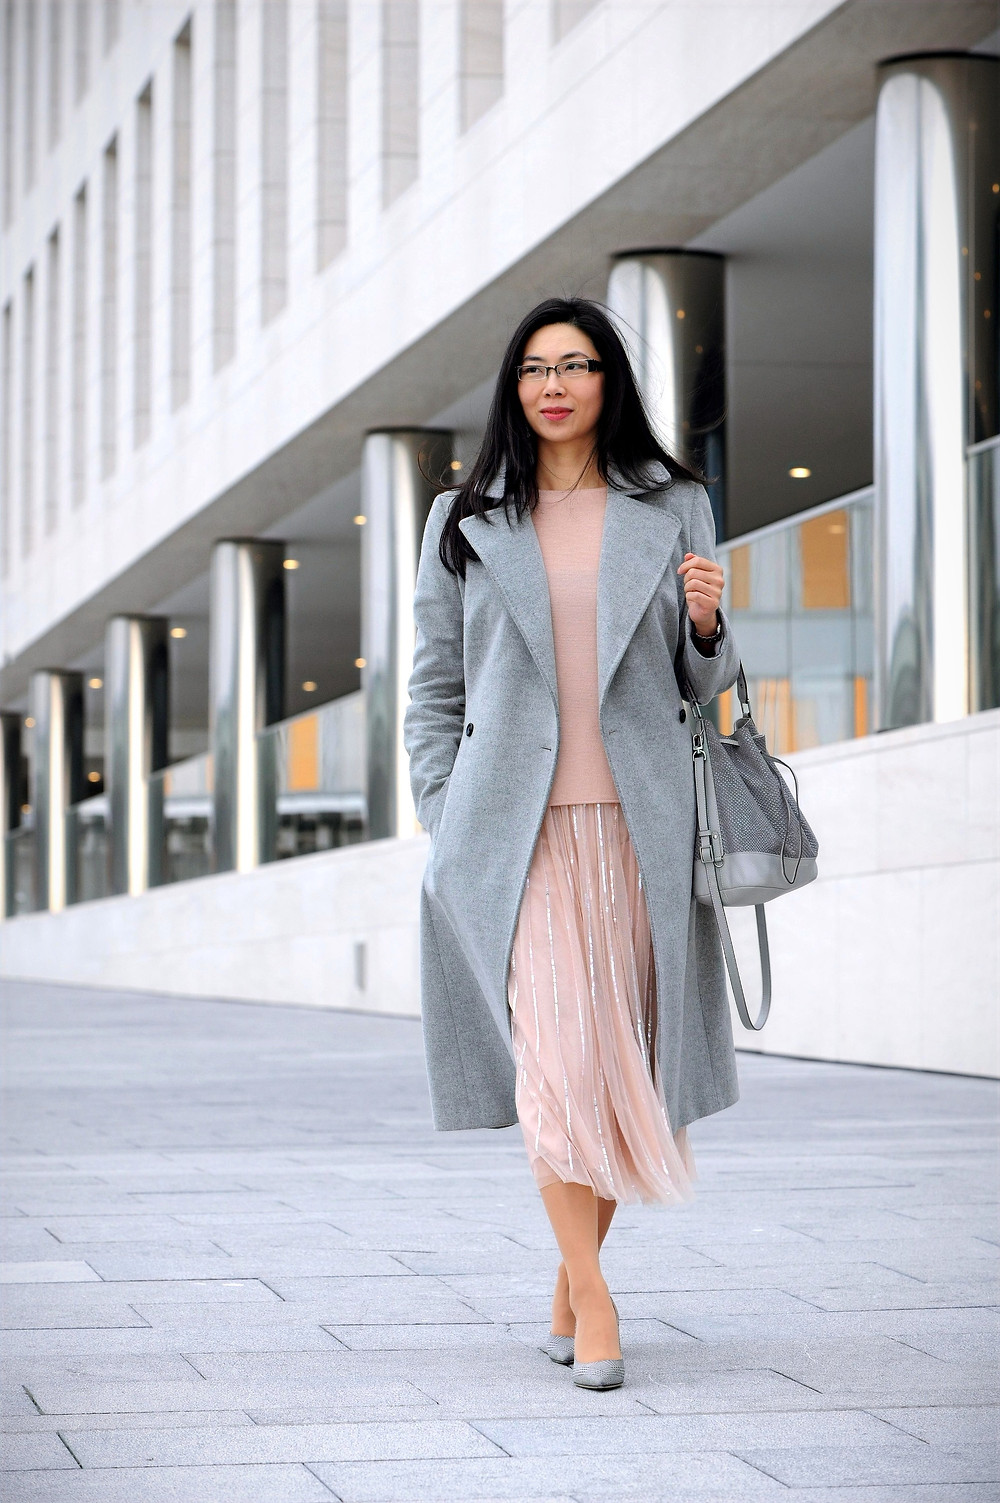 Business casual woman outfit rose quartz tulle skirt and light grey Karen Millen wool coat.